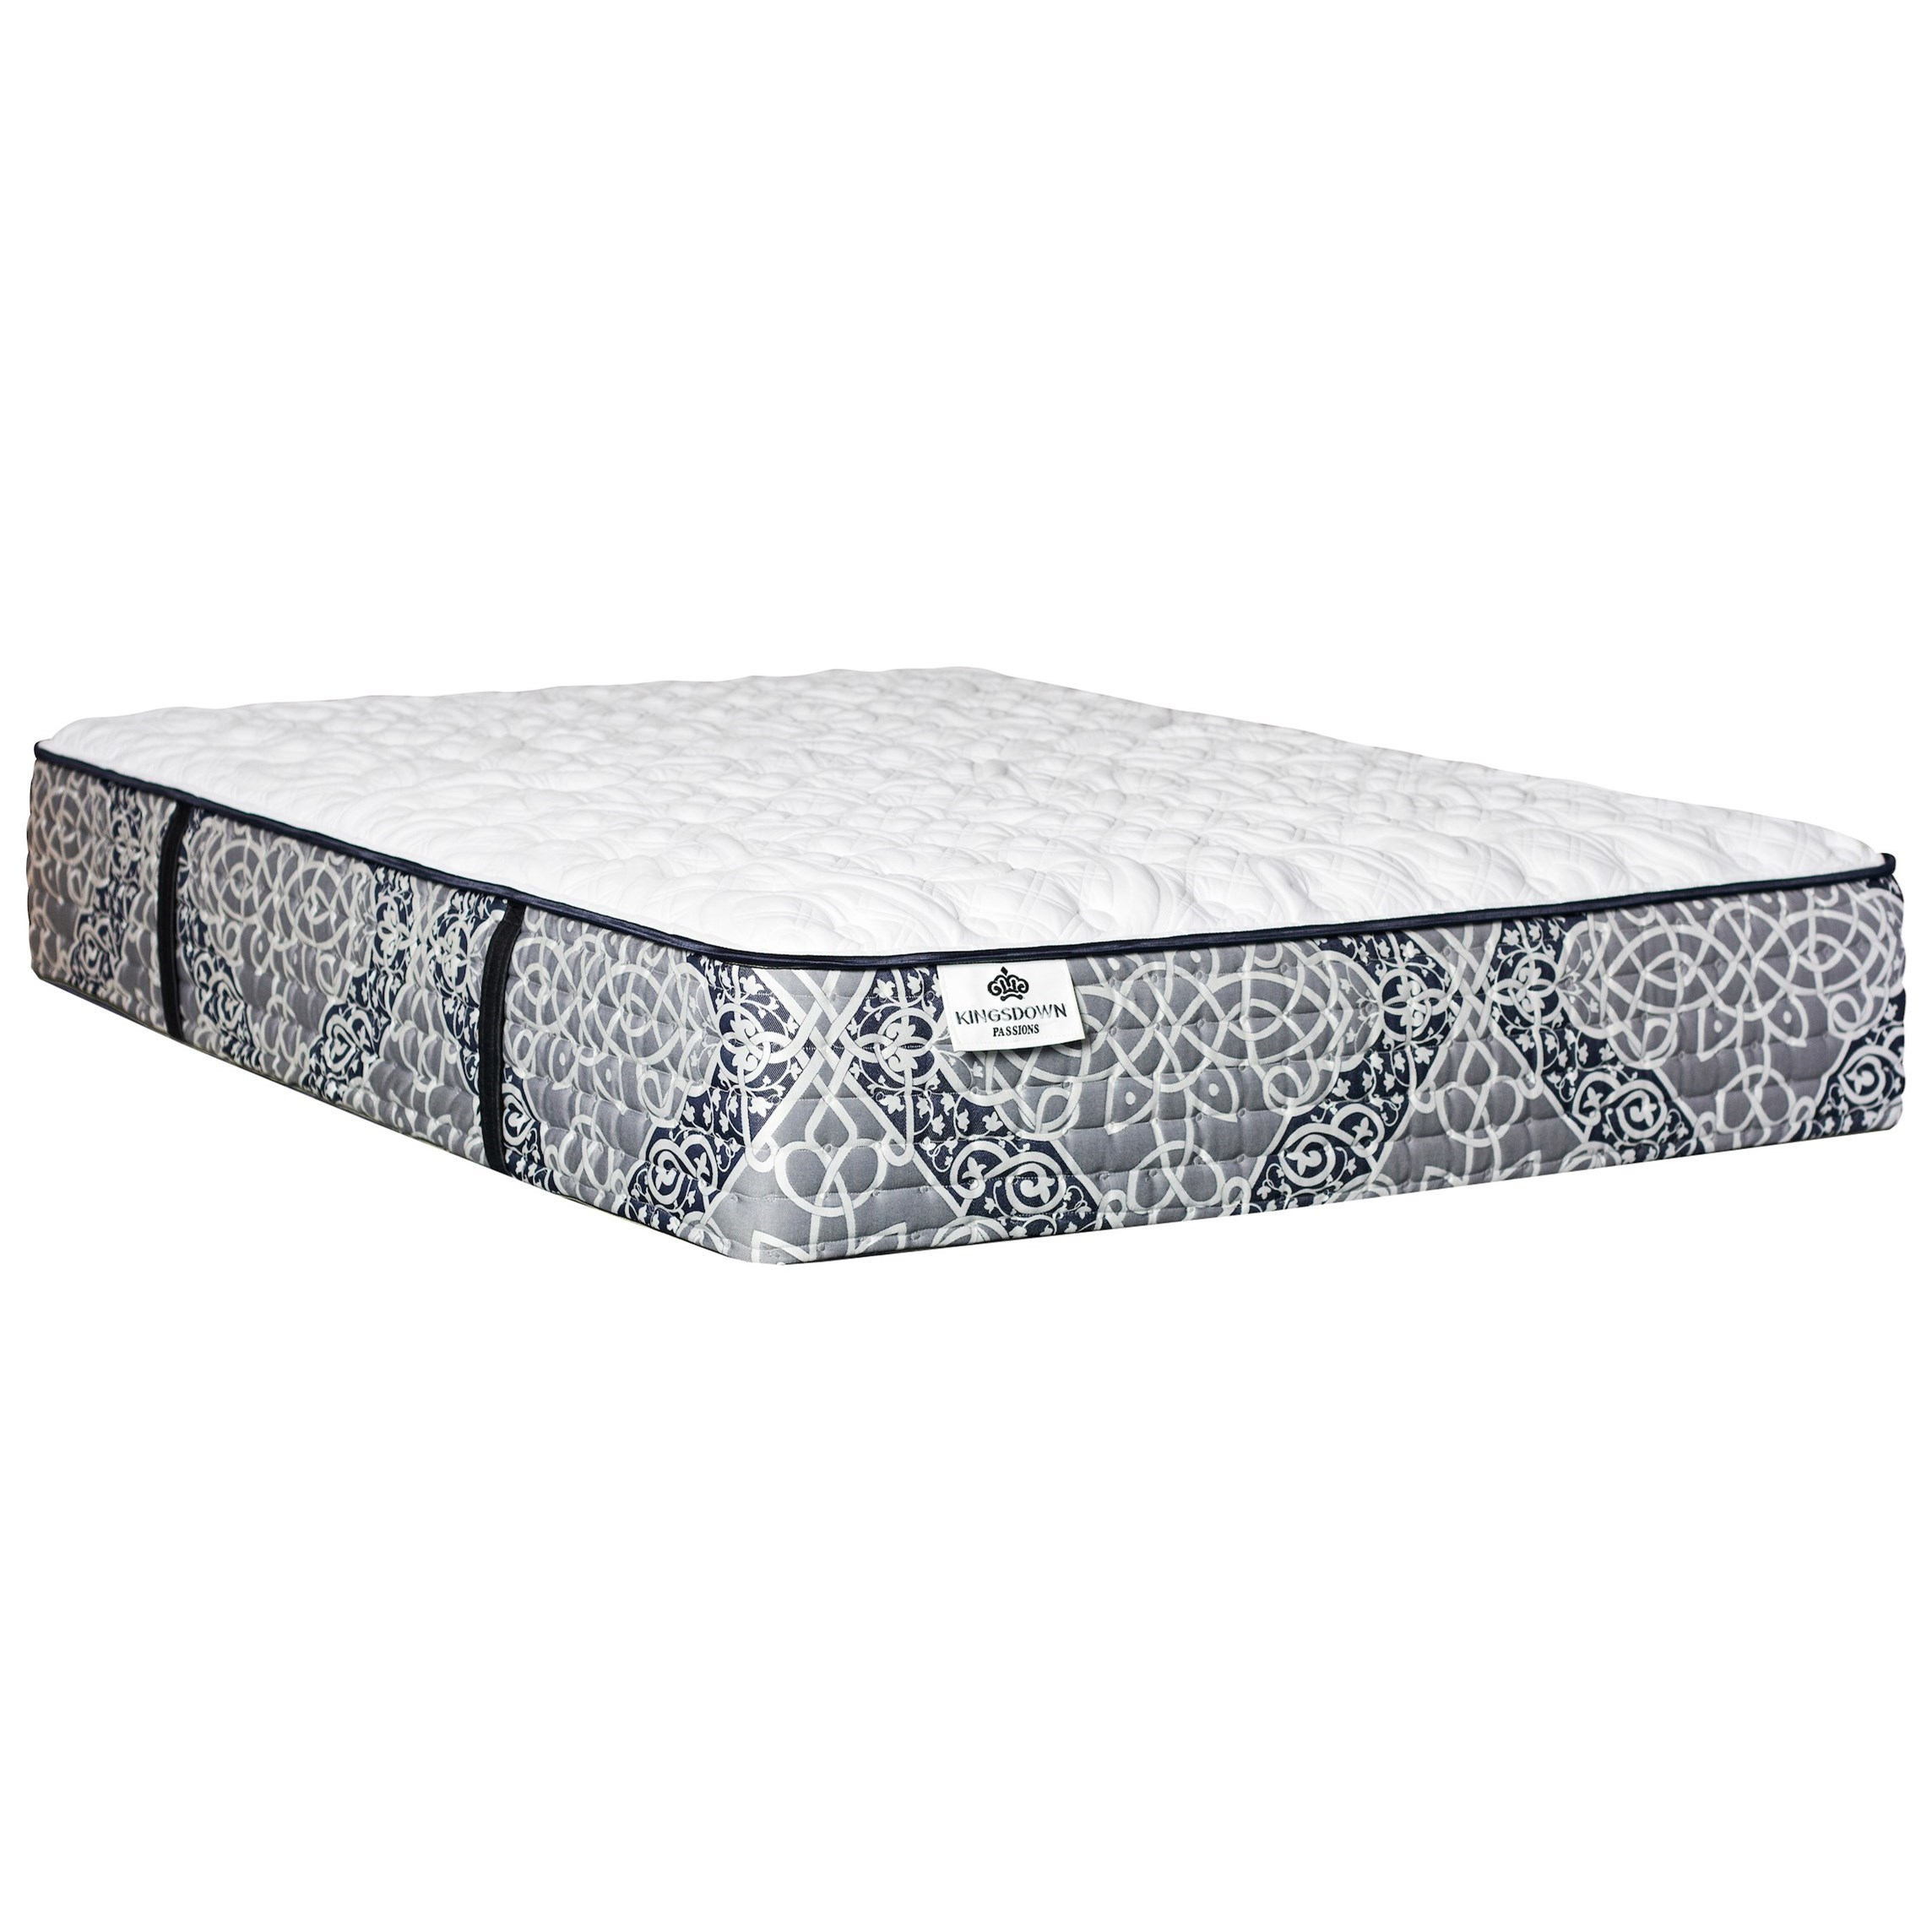 """Manorwood TT Queen 14 1/2"""" Tight Top Mattress by Kingsdown at Ruby Gordon Home"""